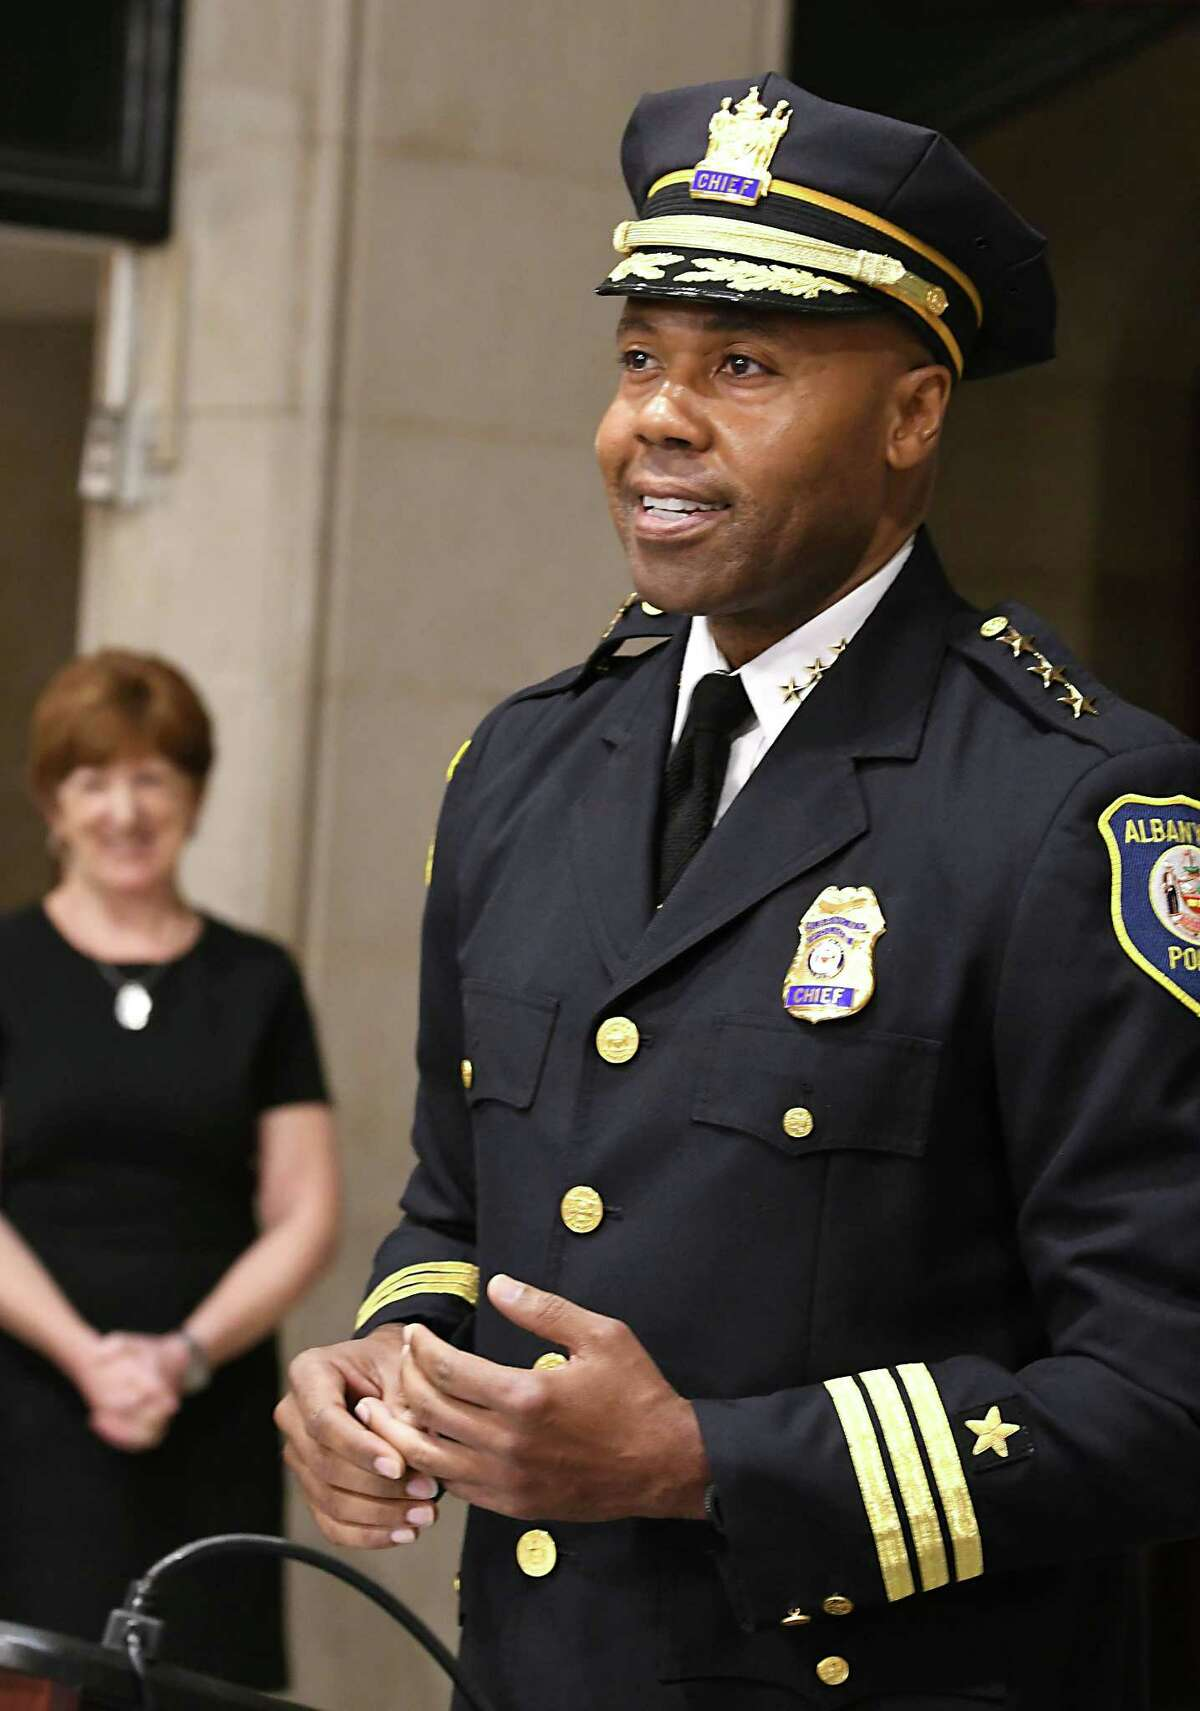 Albany Police Chief Eric Hawkins speaks after being sworn in by Albany Mayor Kathy Sheehan, left, at Albany City Hall on Friday, Sept. 7, 2018 in Albany, N.Y. Hawkins said the department is preparing to purchase drones. (Lori Van Buren/Times Union)